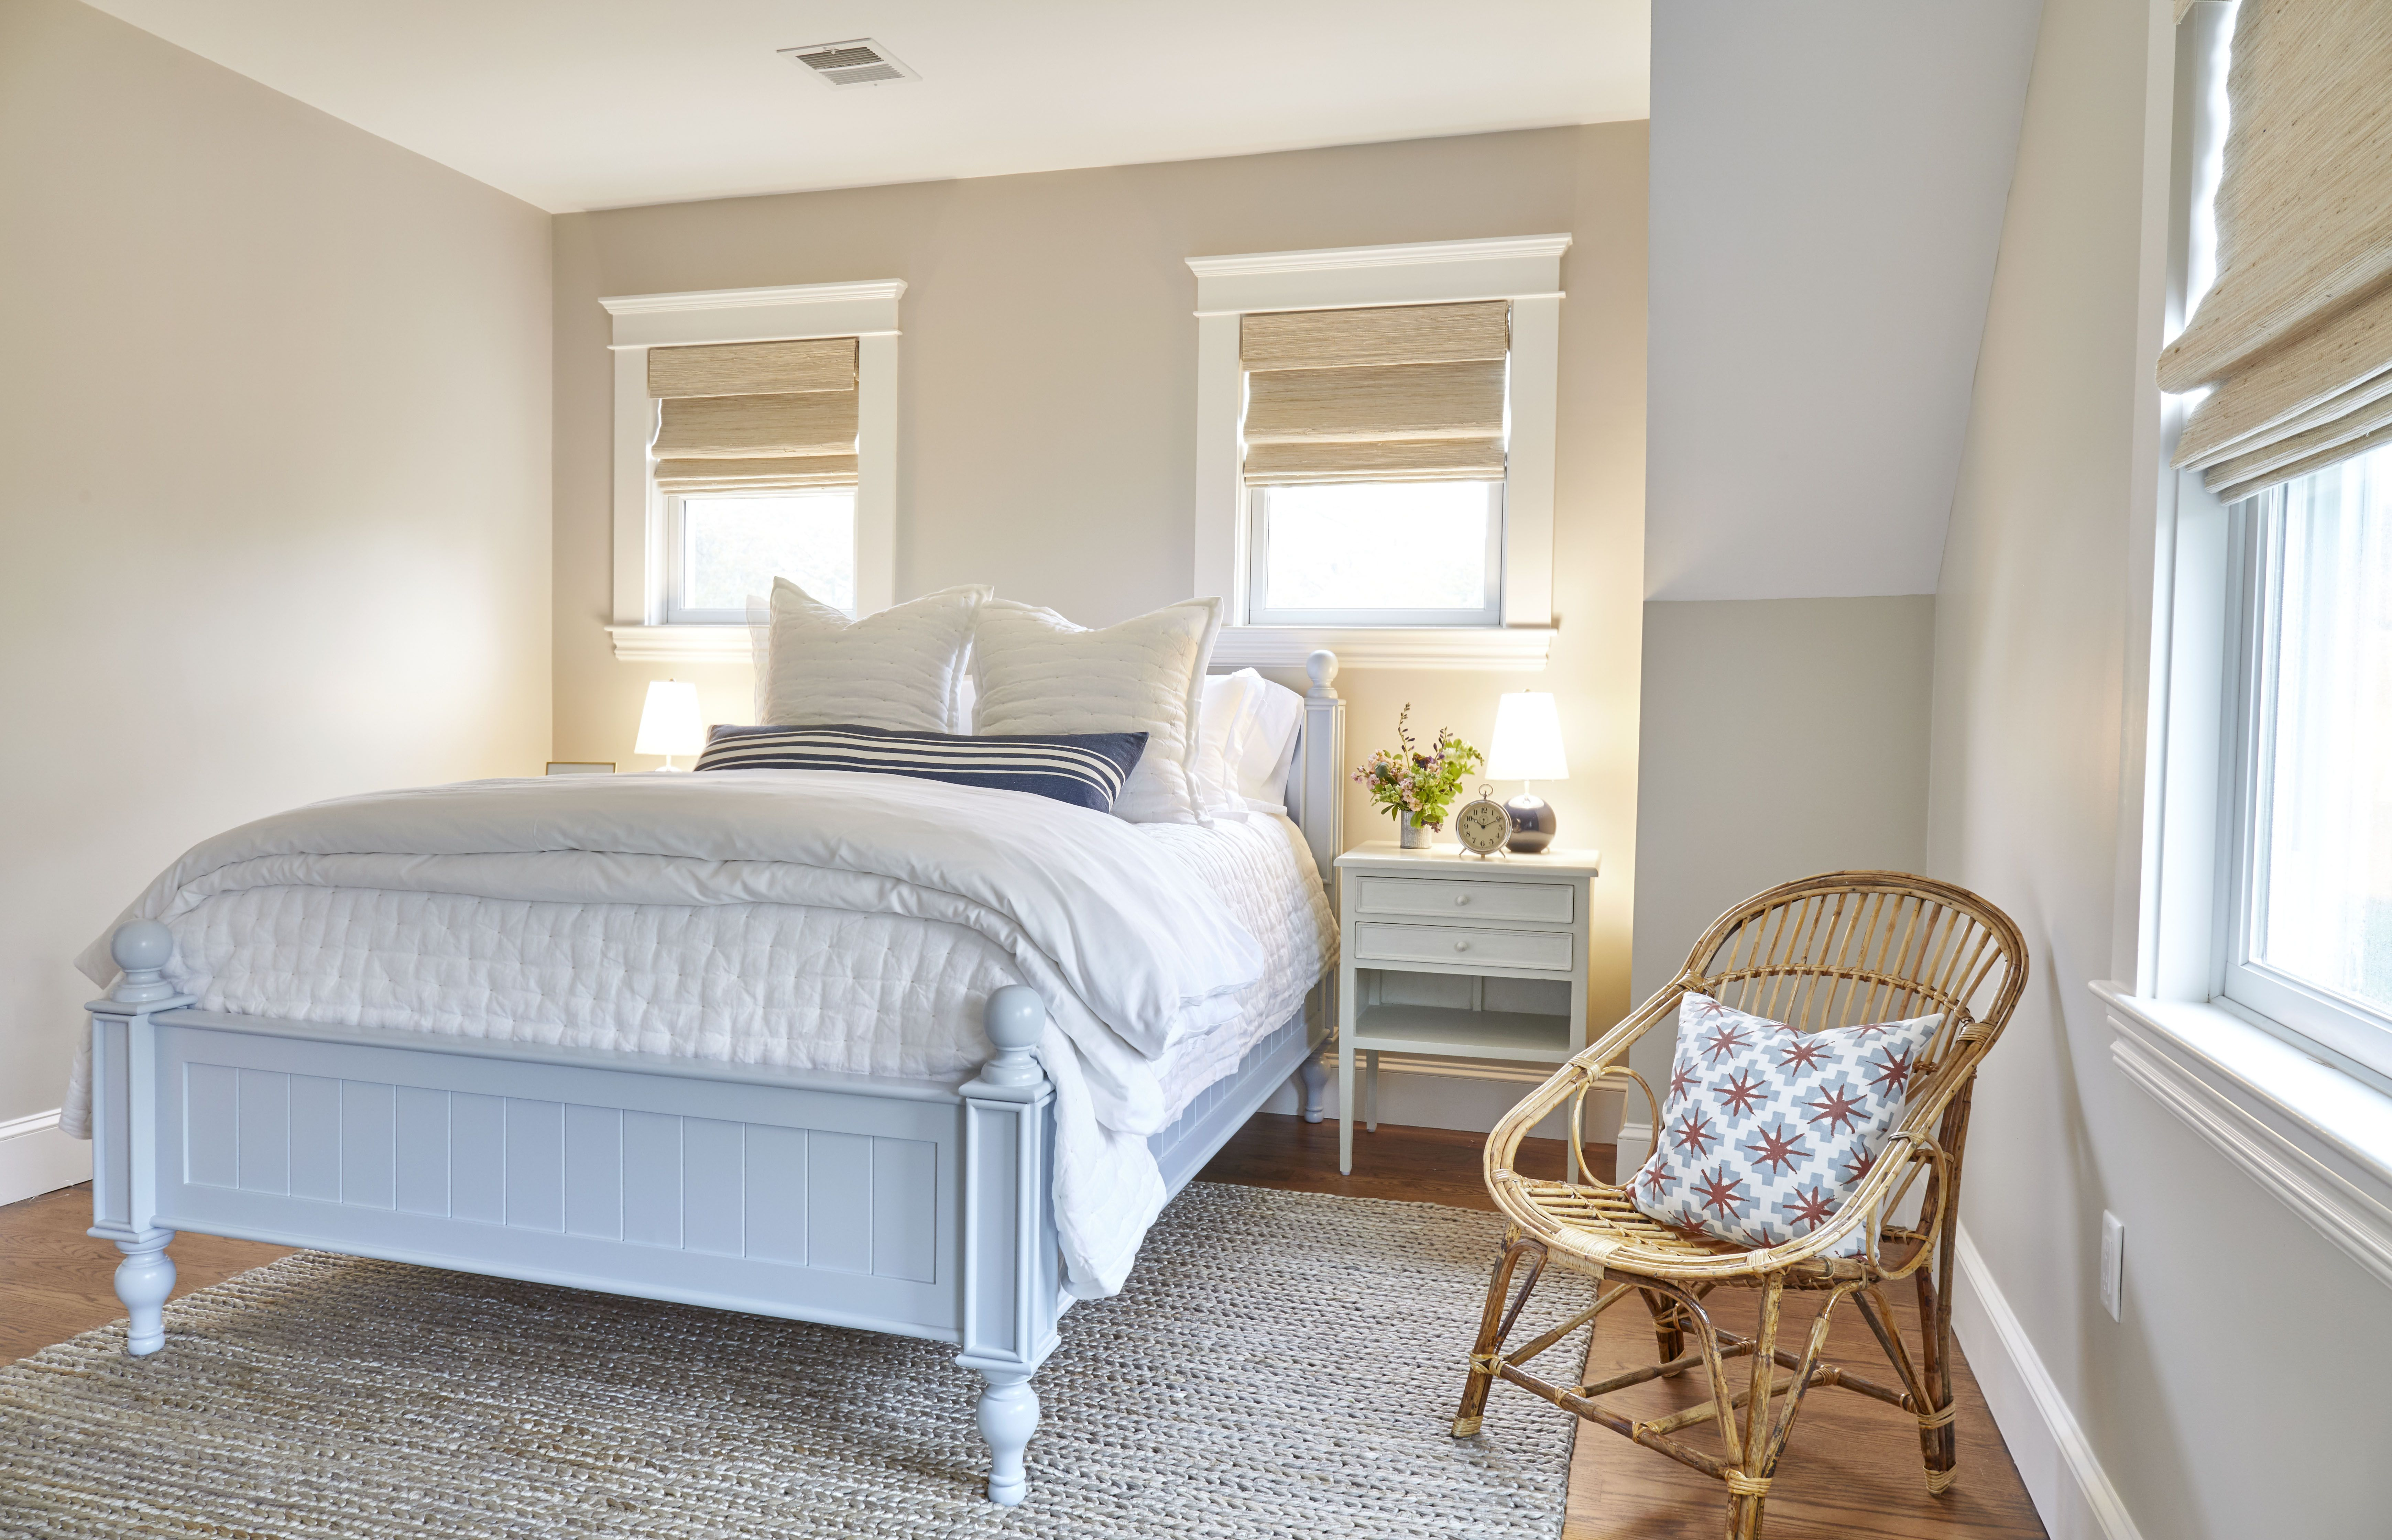 Our Beside The Seaside Bed In Martha S Vineyard Farmhouse Designed